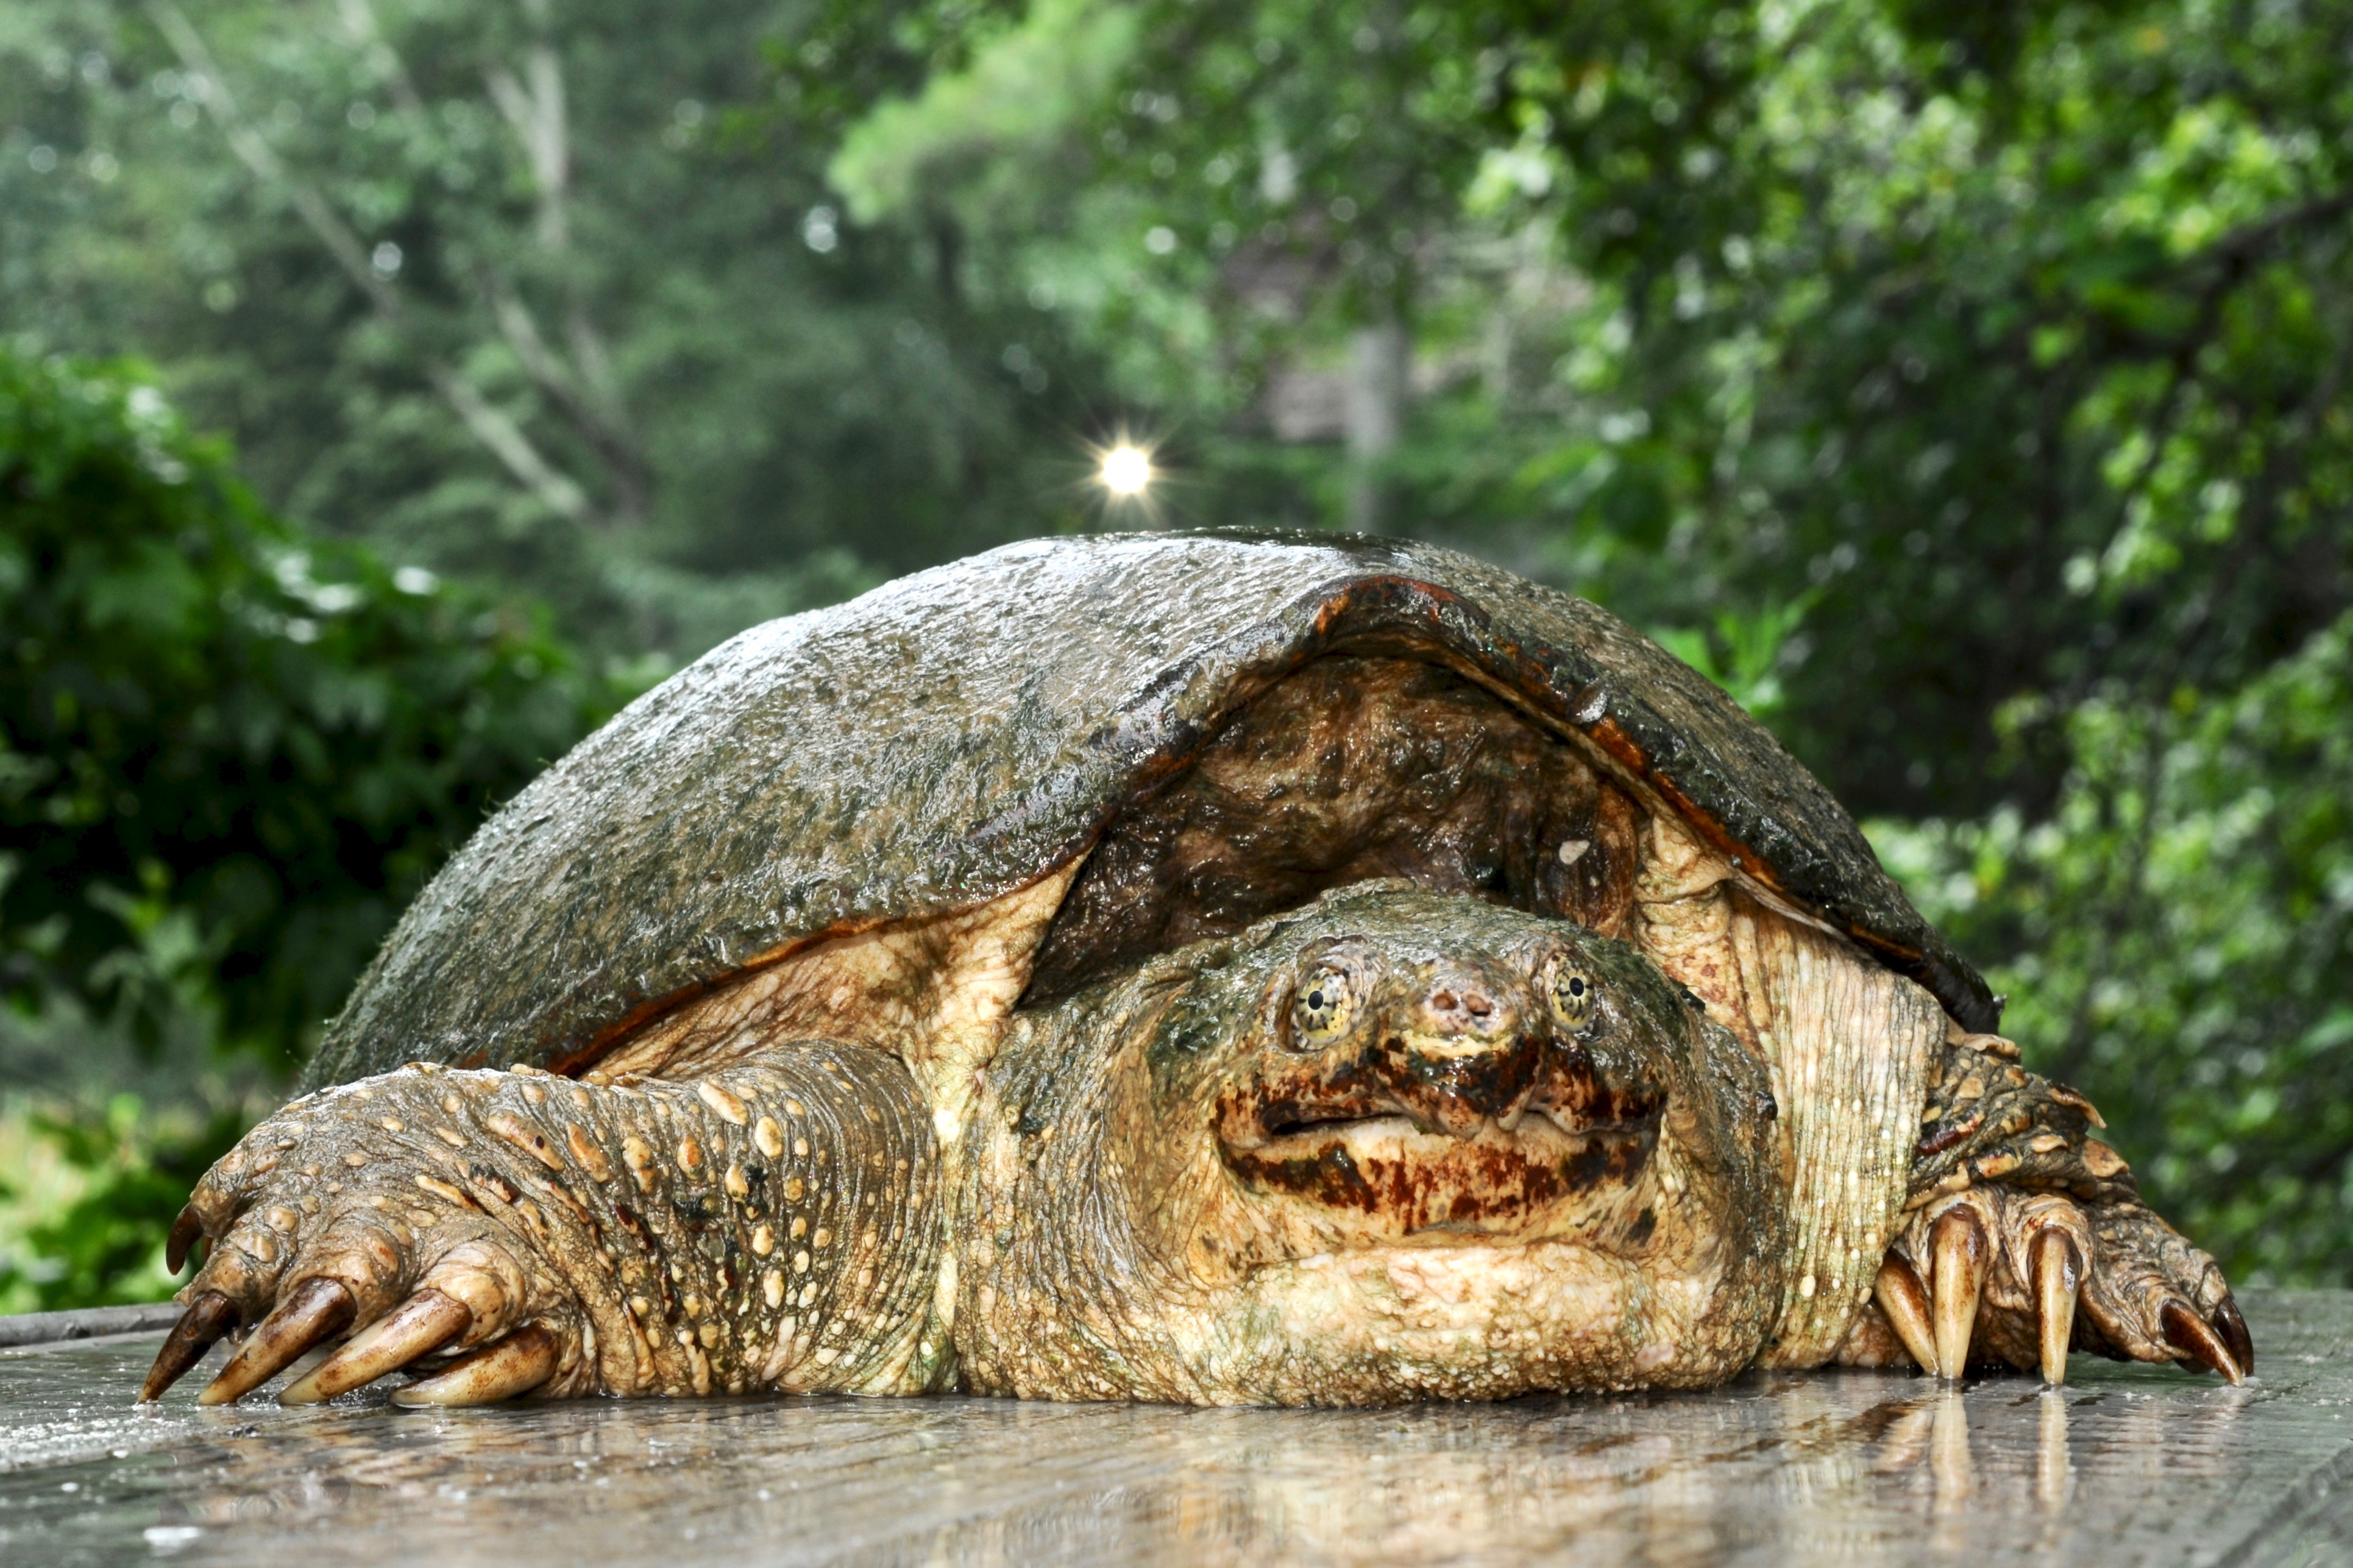 Common Snapping Turtle 109